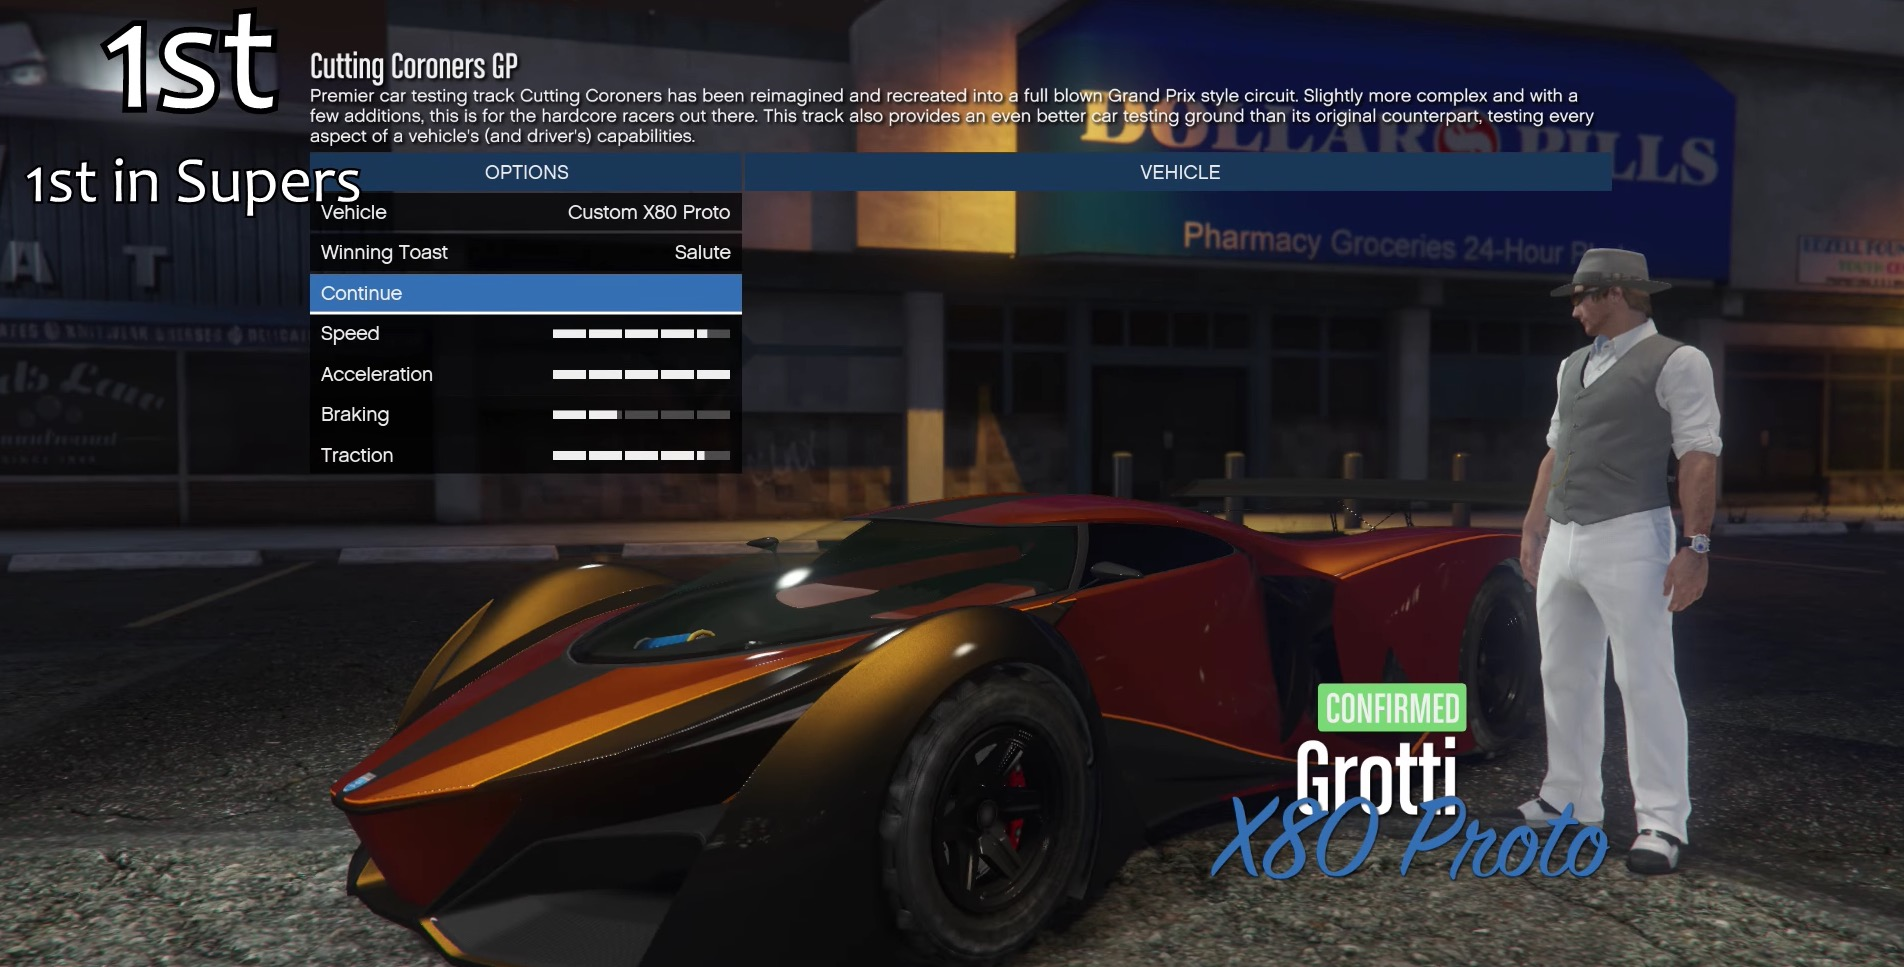 3 photos grotti x80 proto the new fastest car in gta online